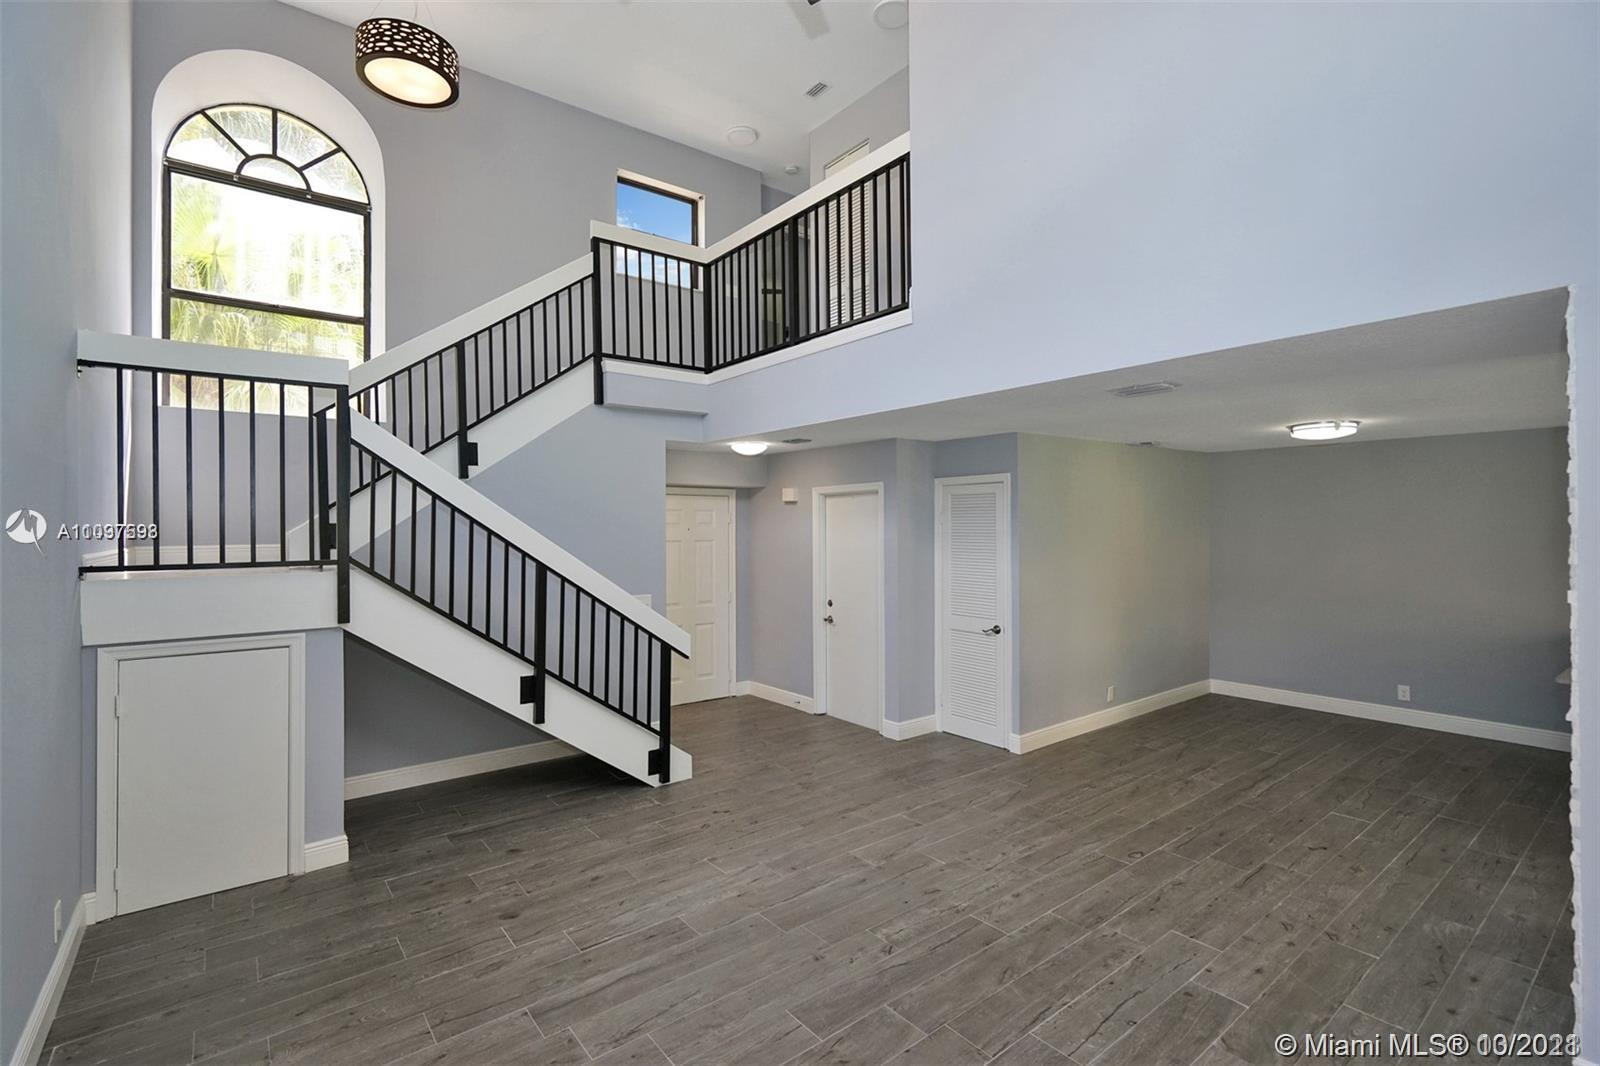 2 STORY UNFURNISHED 1500 sq ft CORNER TOWNHOME with 2 BEDROOMS / 2 BATHROOMS upstairs and half bath